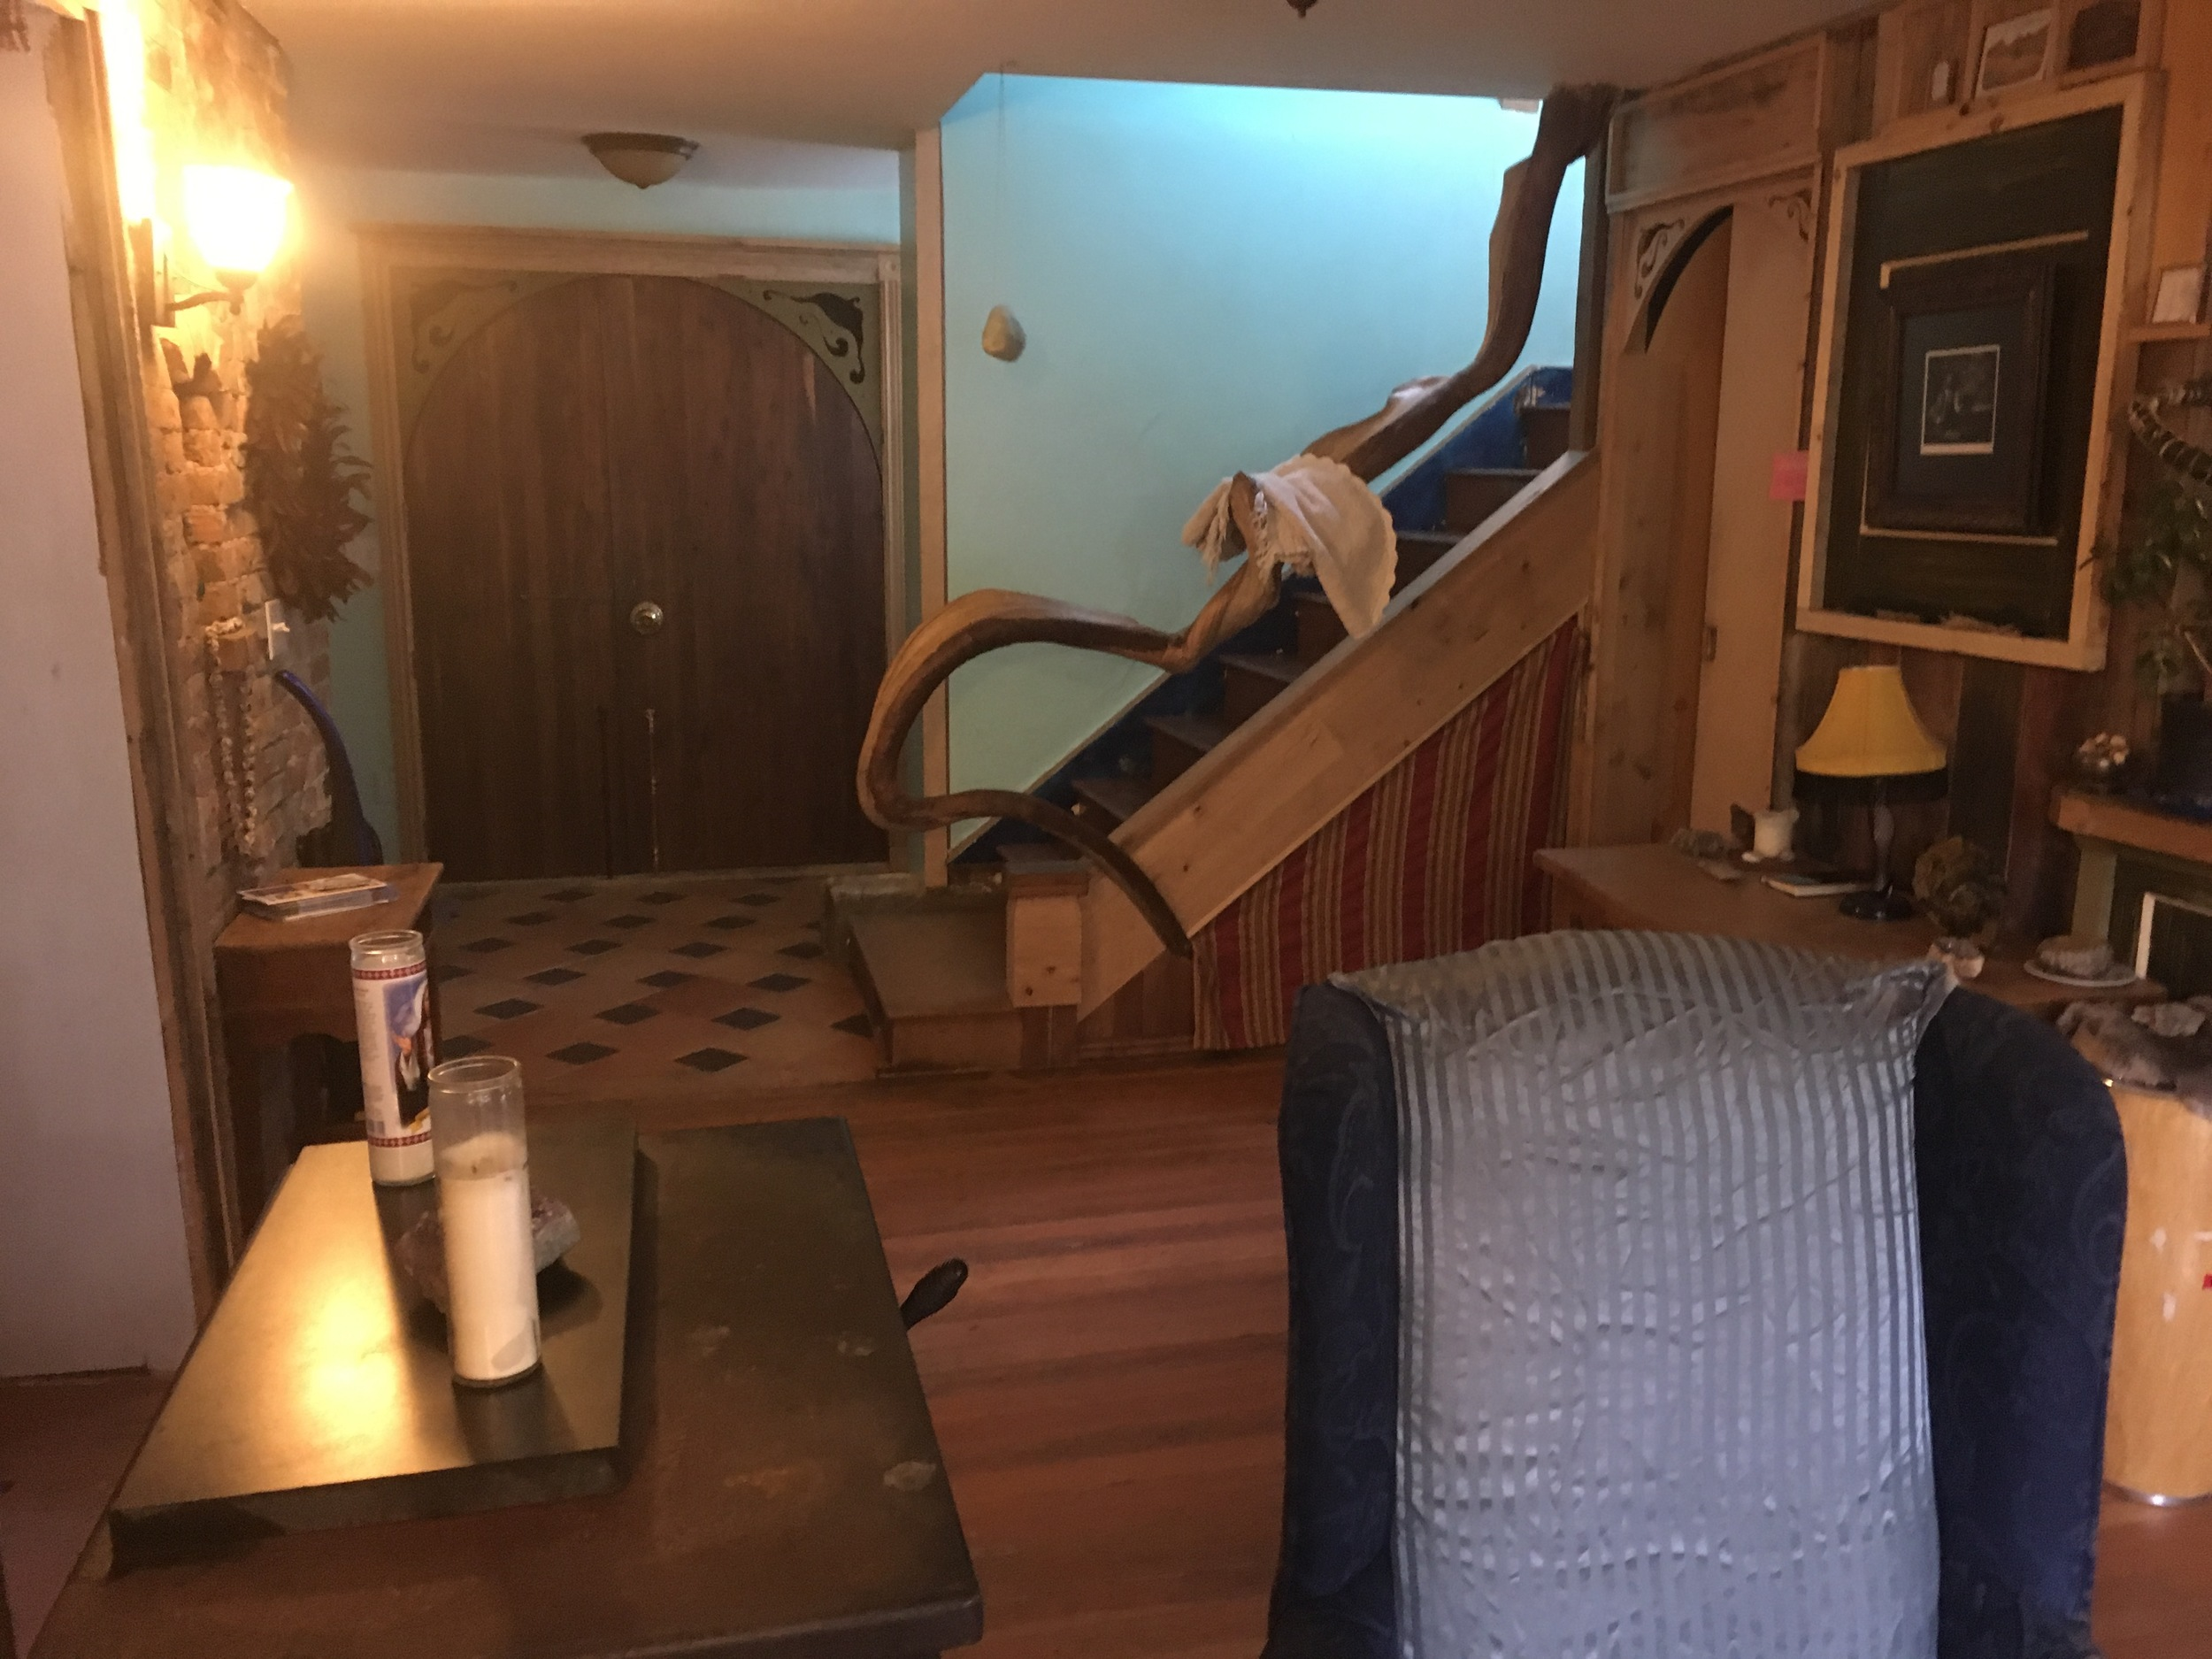 Stairs leading to upstairs suite